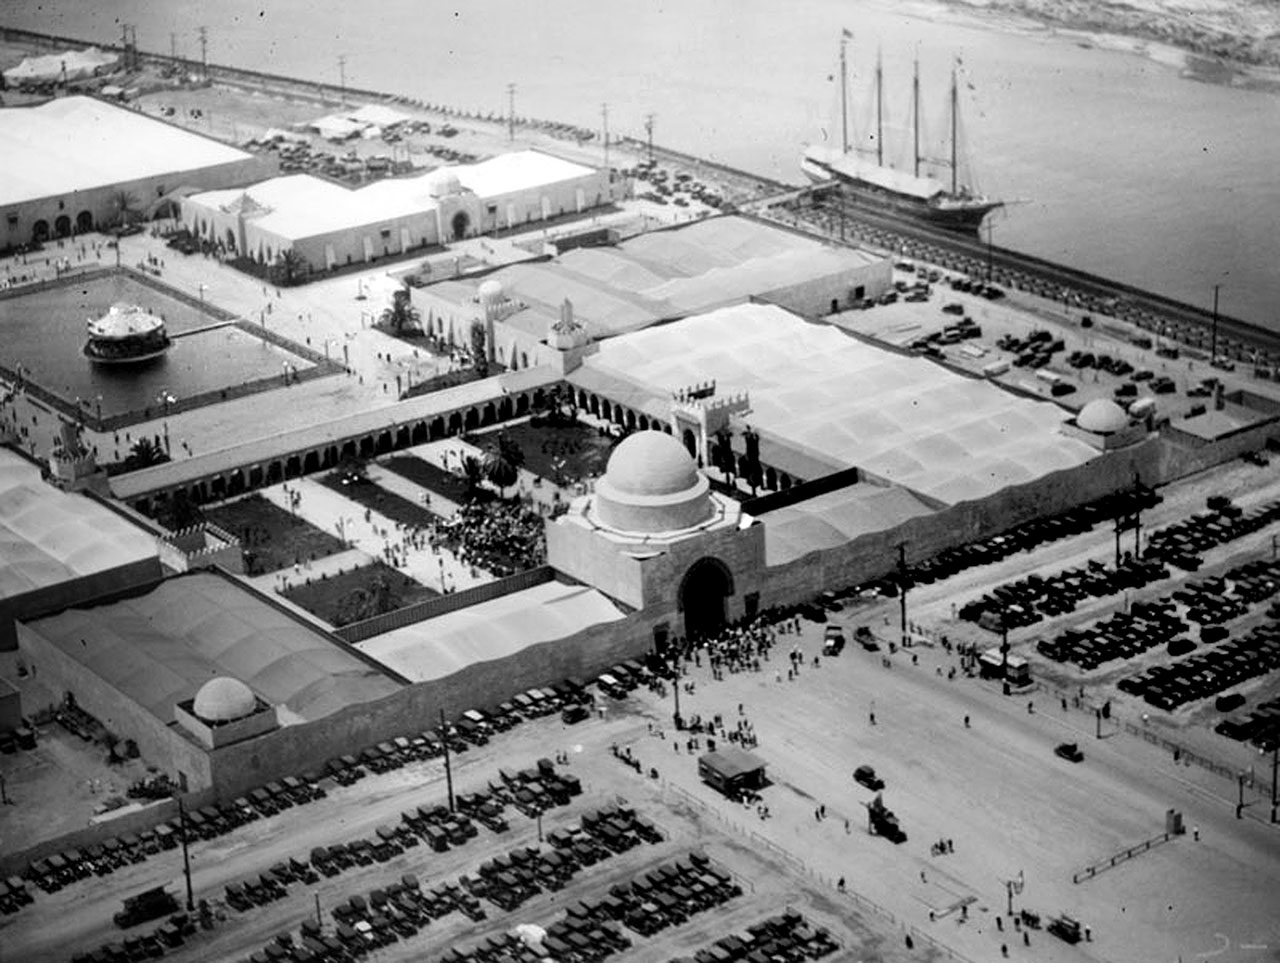 Aerial View. Most of the fair's buildings were roofed with canvas sheets. The walls were stuccoed wallboard. Photograph courtesy of Security Pacific National Bank Collection, Los Angeles Public Library